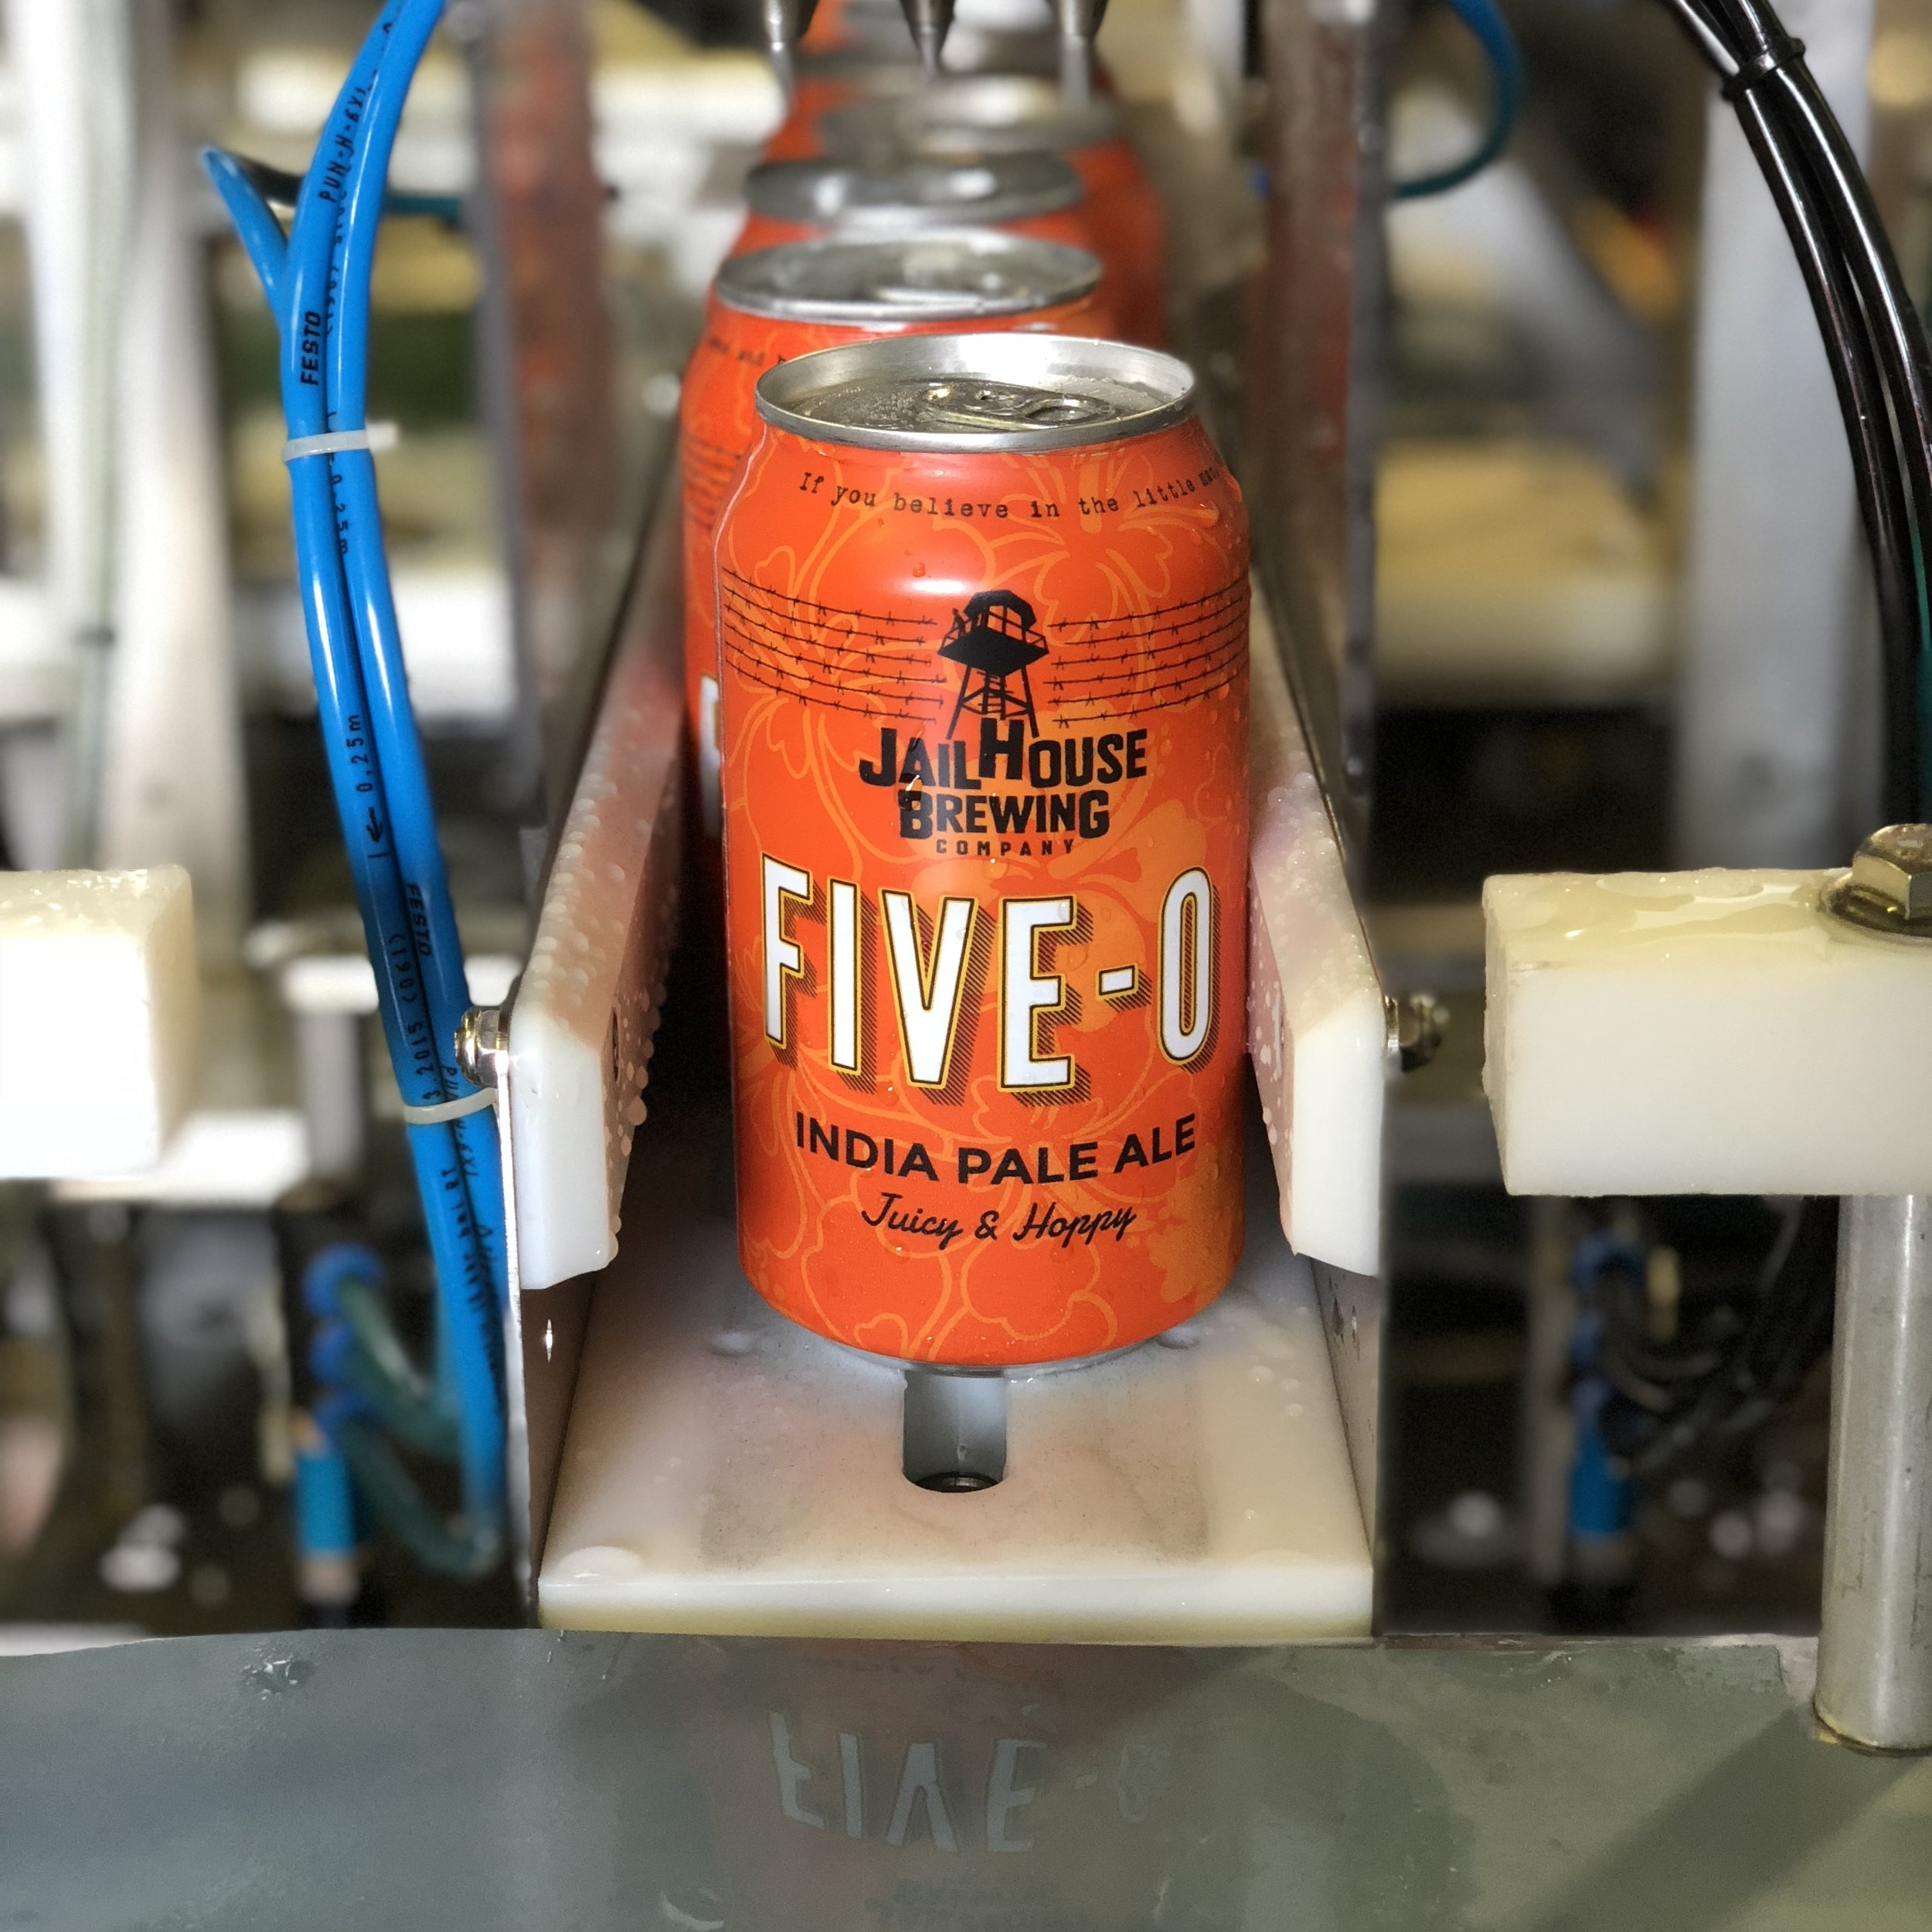 Who doesn't love a good quaffable IPA? We certainly do! So we set out to create one. If you think about Five-O, you think Hawaii Five-O, which says tropical. That was our goal. A quaffable tropical IPA. It took some testing and playing around with hop combinations but we learned some things from previous beers and ultimately applied that knowledge when creating the recipe for this beer. Wafting with juicy, light, and tropical hop aromas, Five-O drinks like a session IPA but doesn't exhibit those hop-water characteristics. Very smooth and refreshing but packed full of flavor and aromas.